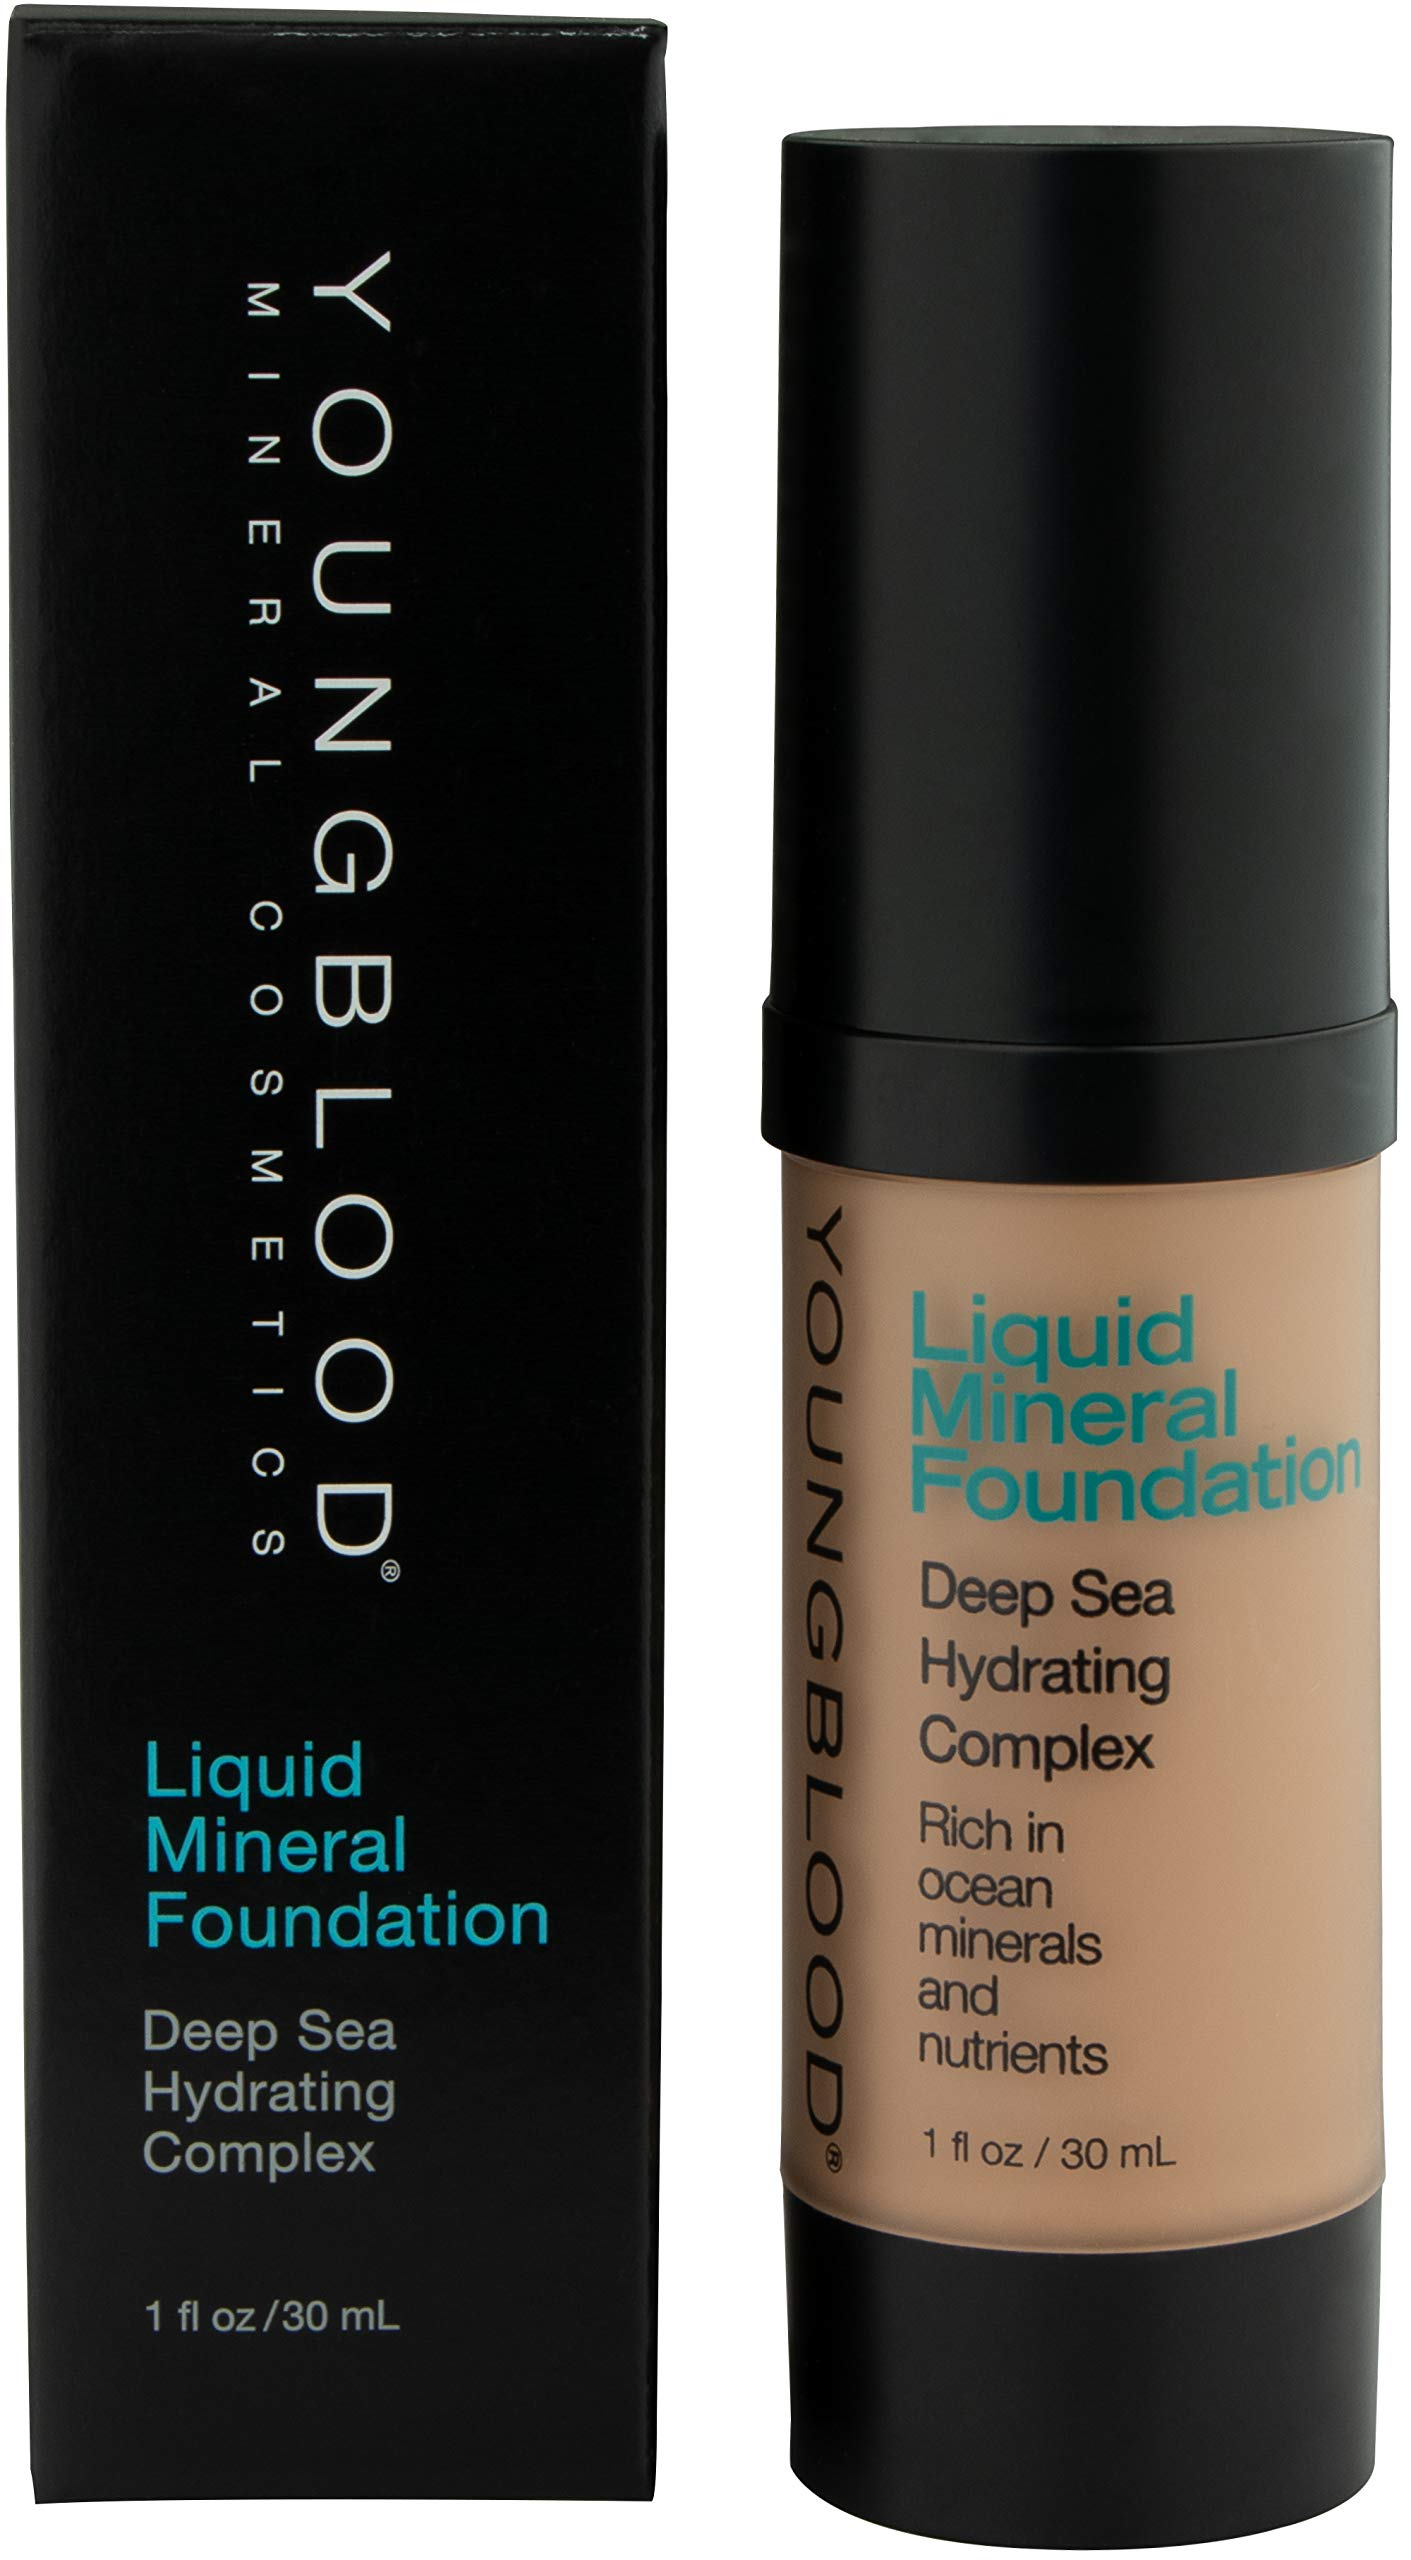 Youngblood Clean Luxury Cosmetics Liquid Mineral Foundation, Golden Sun | Dewy Mineral Lightweight Full Coverage Makeup for Dry Skin Poreless Flawless Tinted Glow | Vegan, Cruelty Free, Gluten-Free